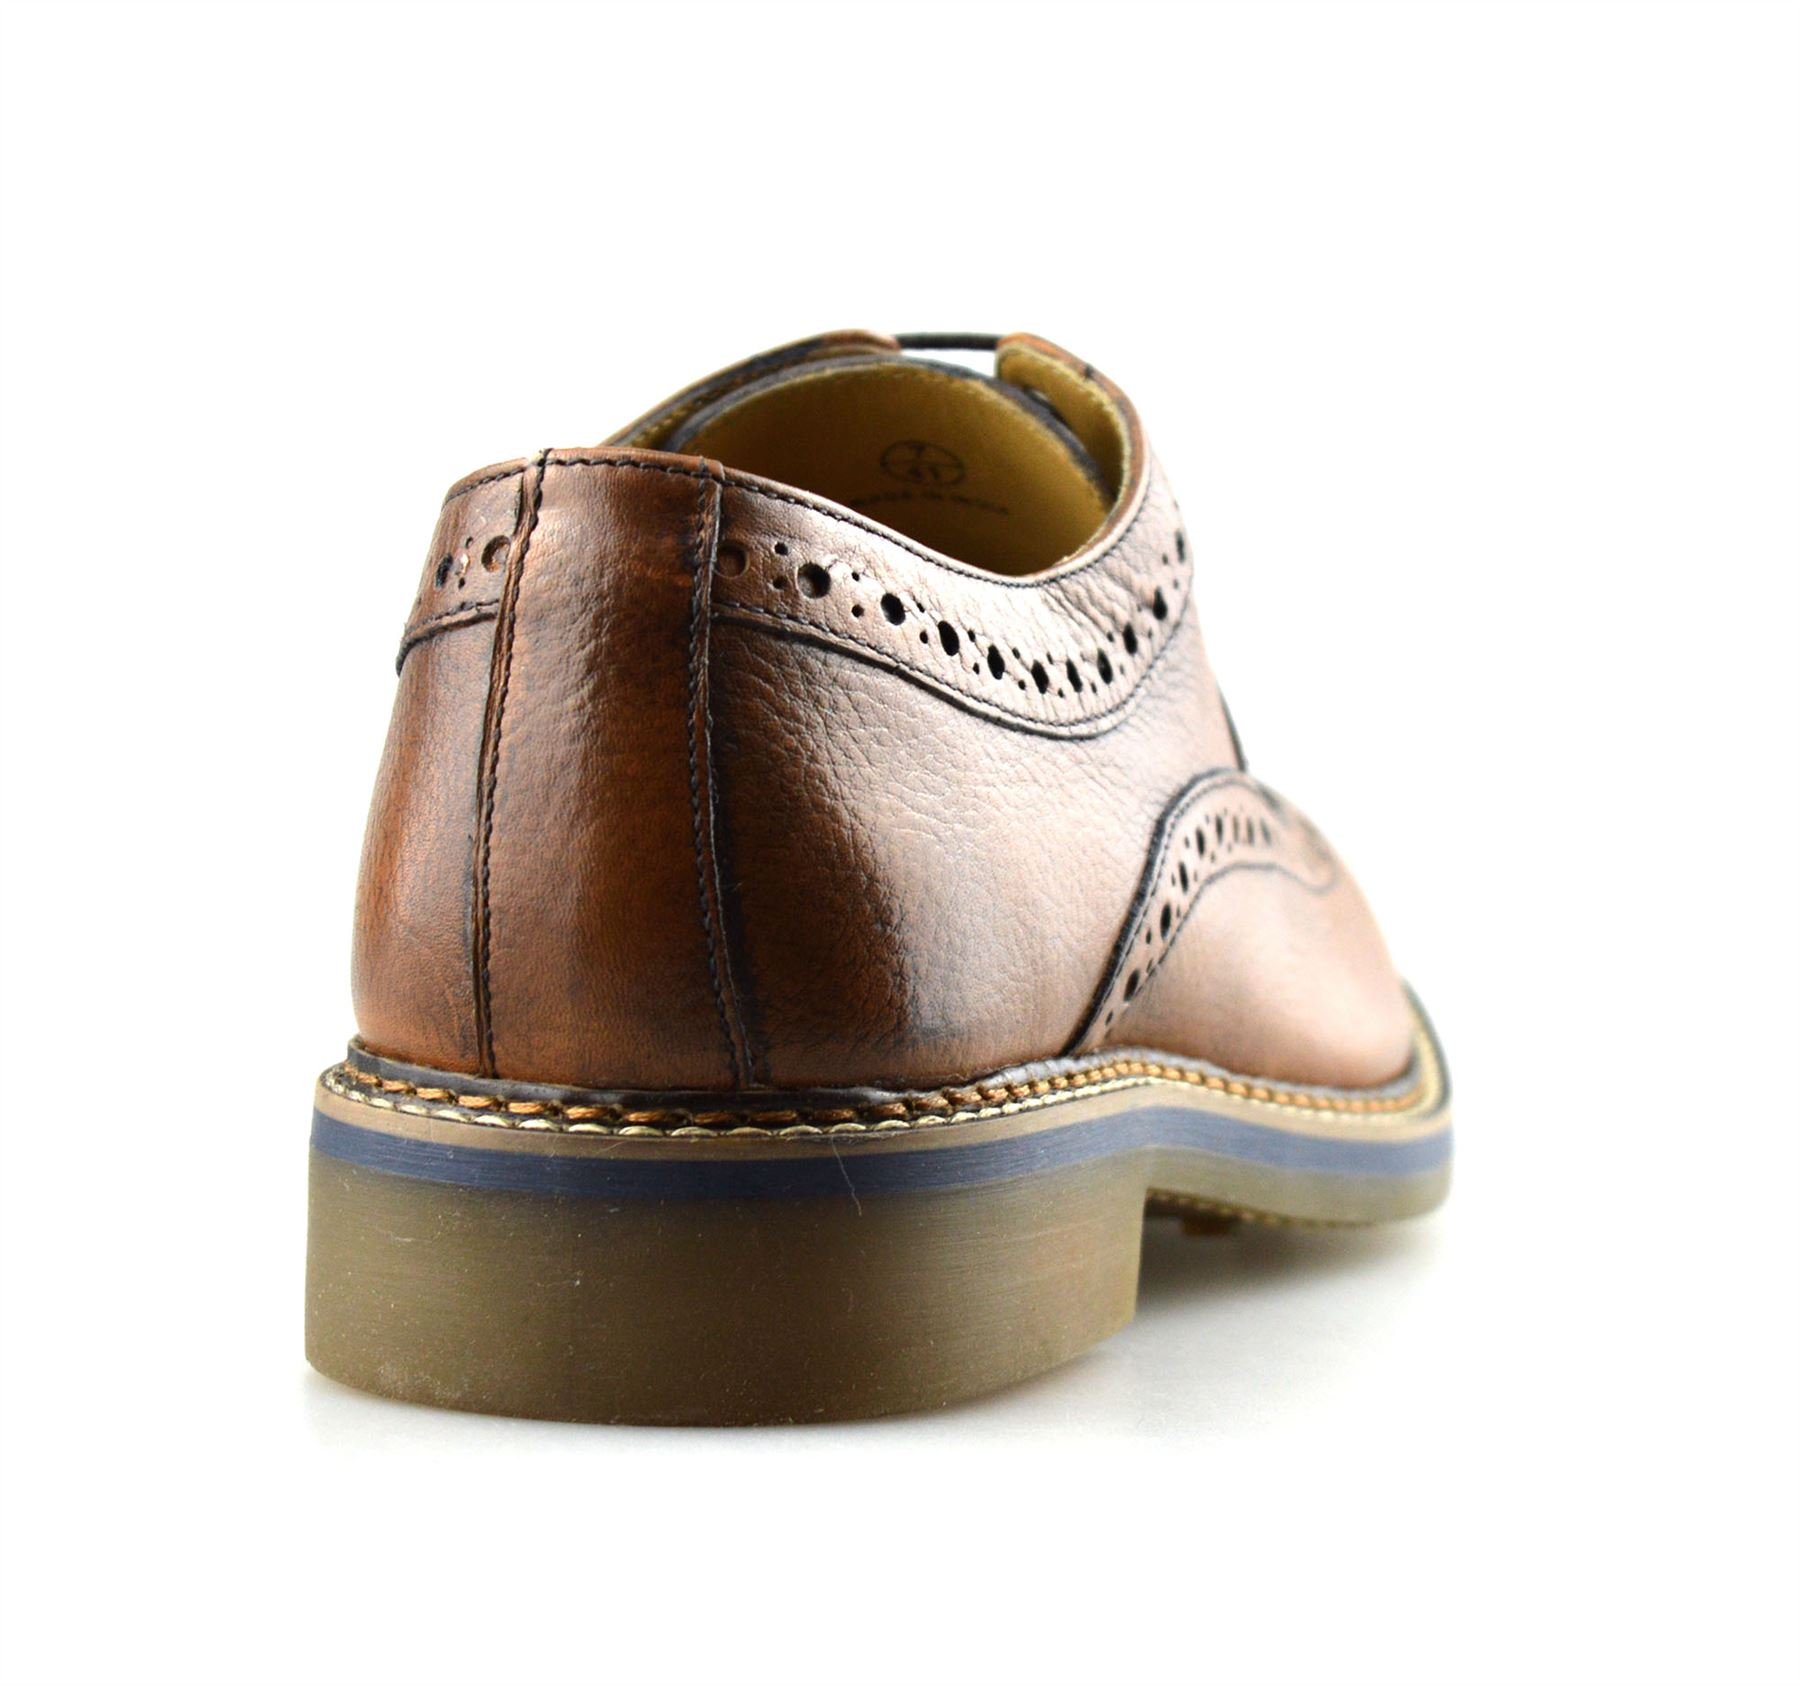 Mens-New-Ikon-Leather-Casual-Smart-Lace-Up-Oxford-Brogues-Work-Office-Shoes-Size thumbnail 15